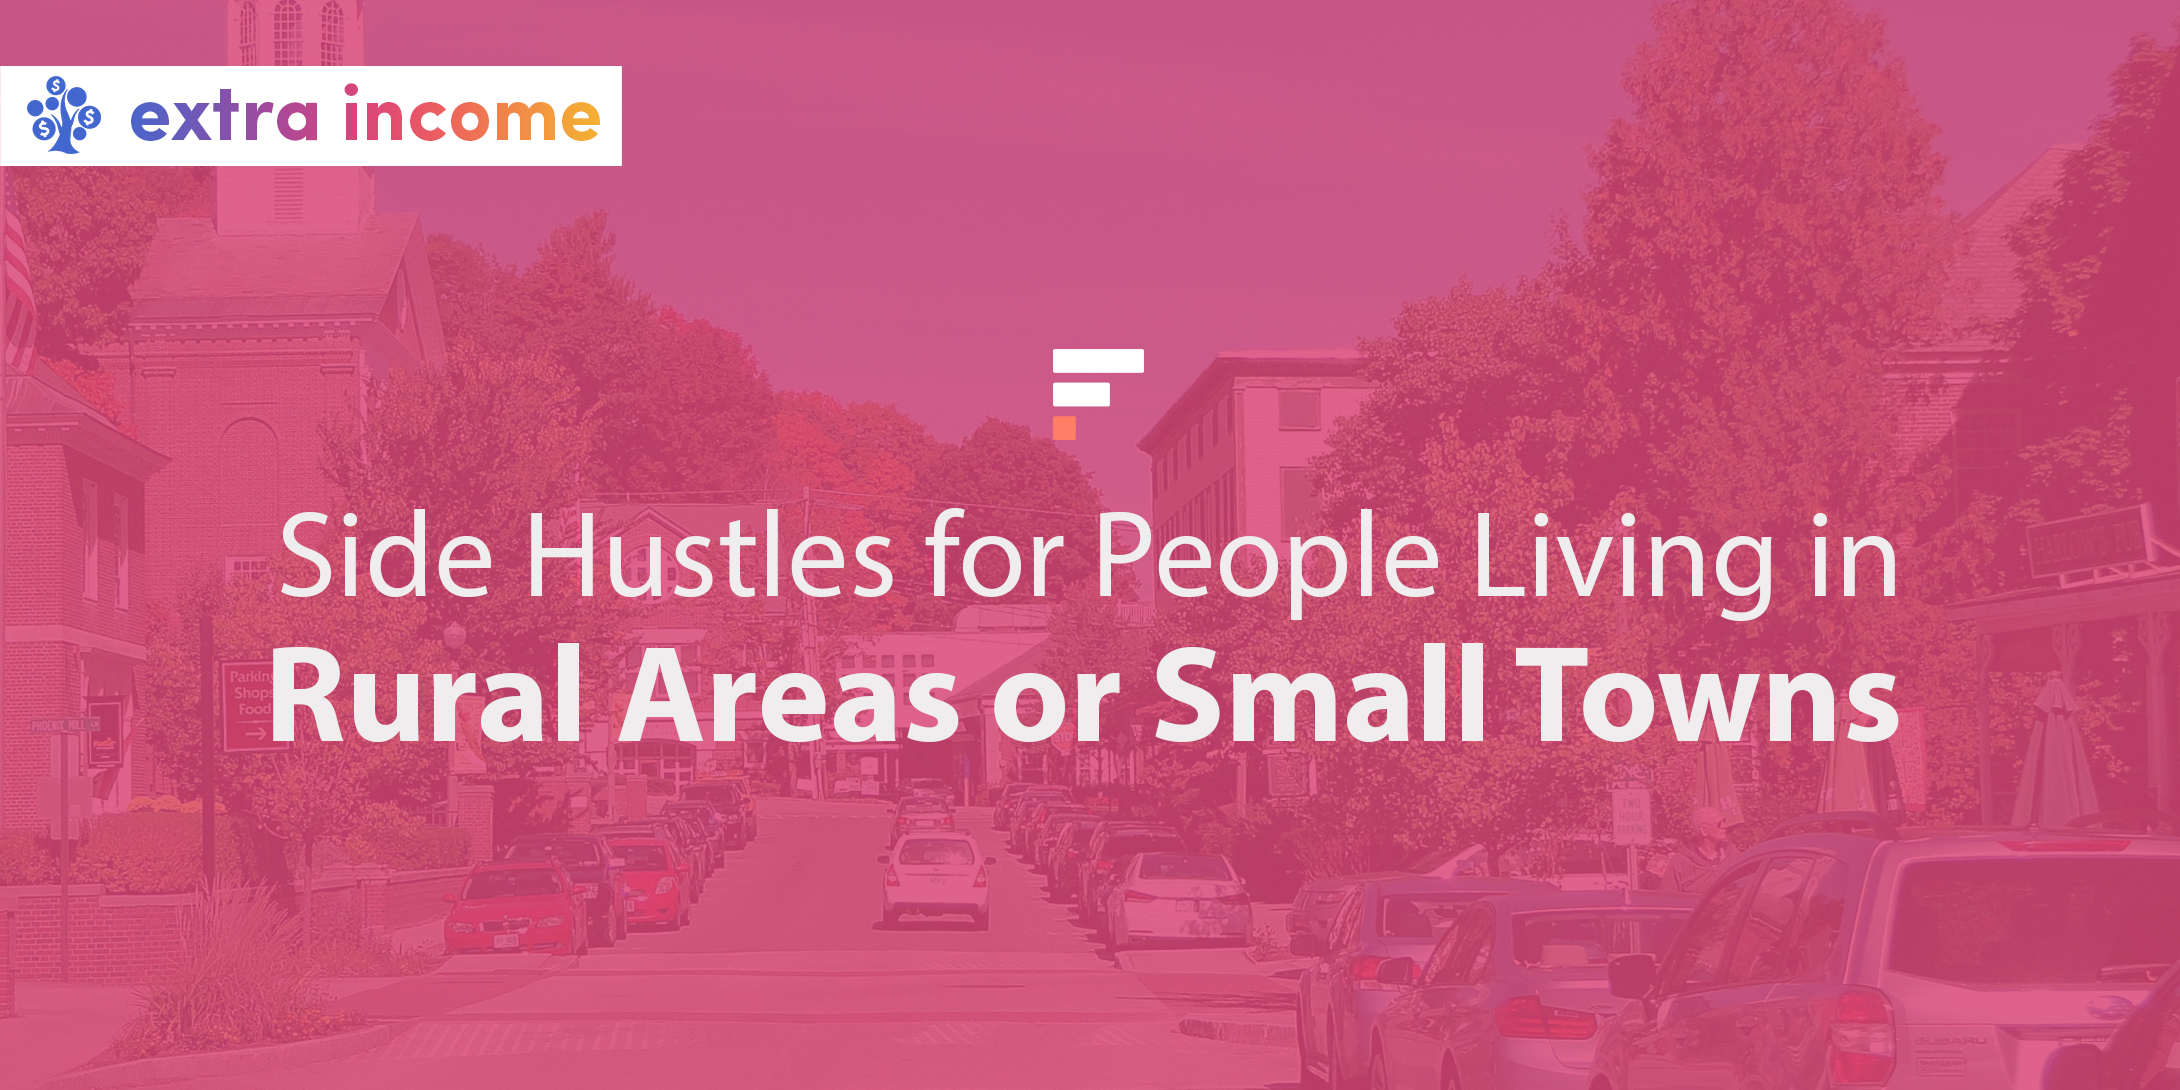 Side hustles for people living in rural areas or small towns